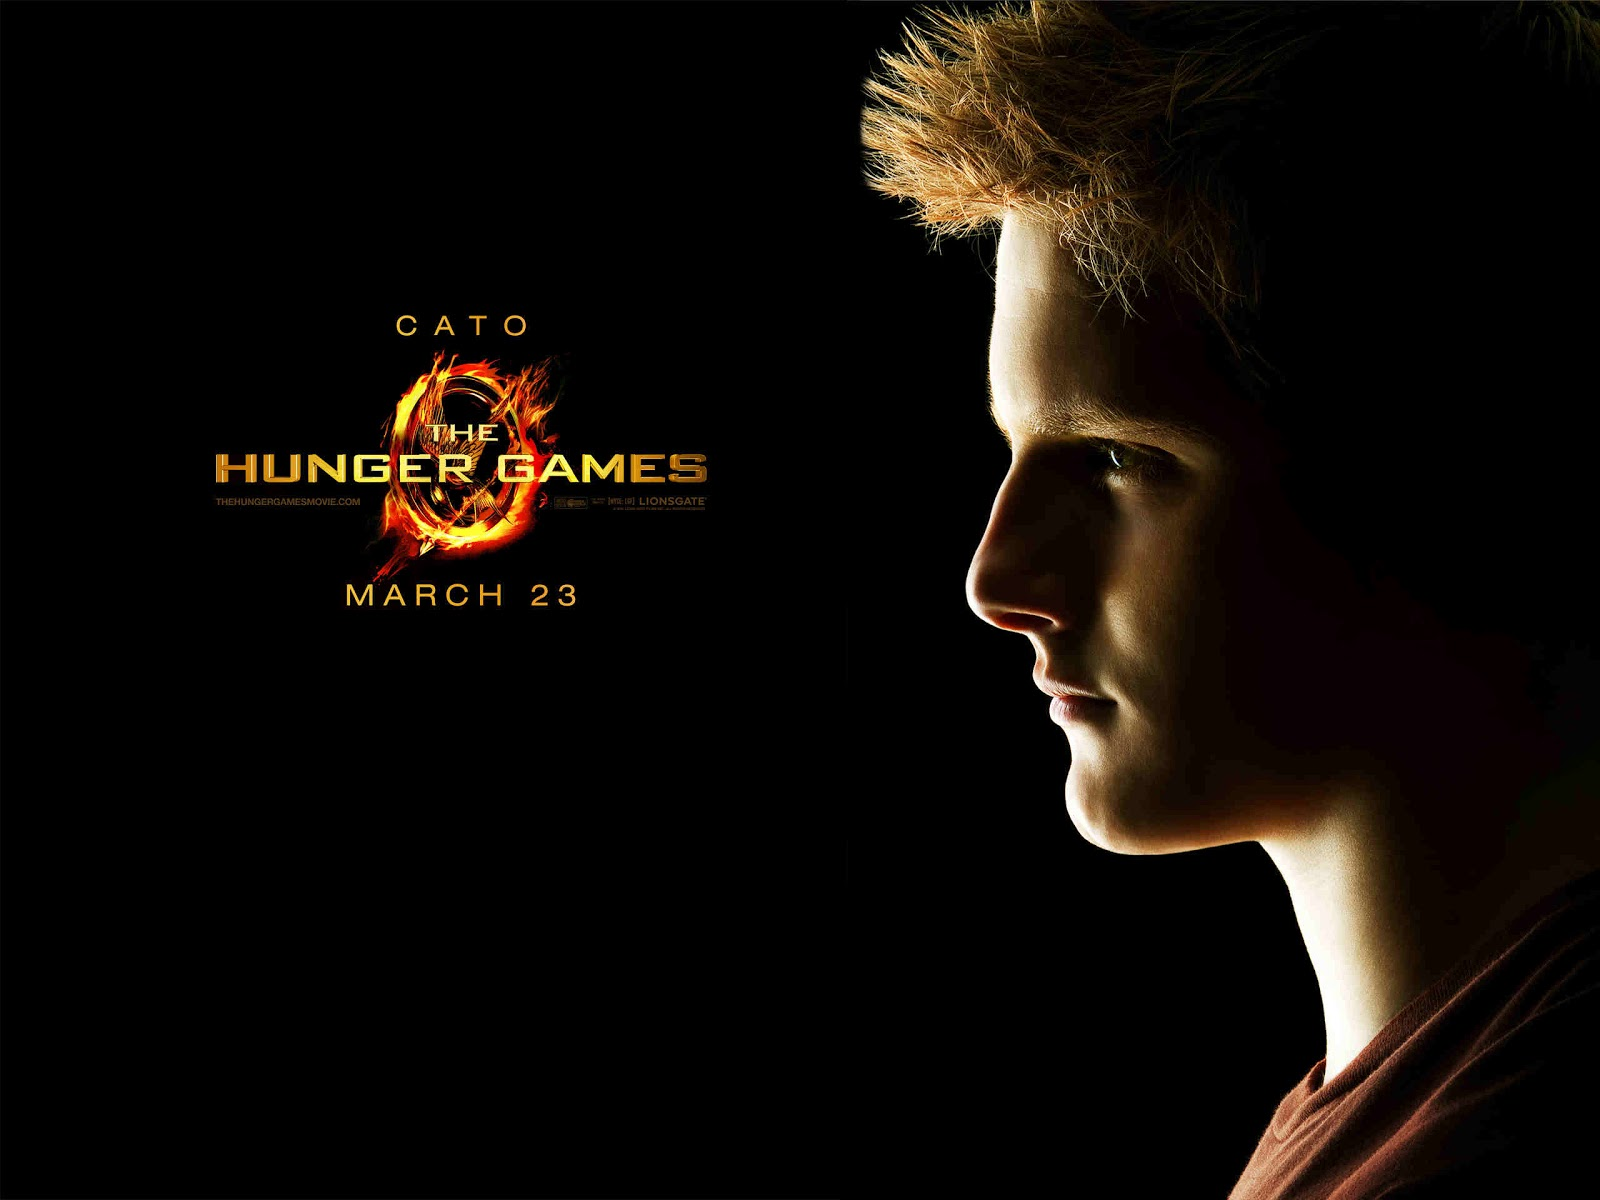 http://4.bp.blogspot.com/-CHI6GRUKDlI/UHwbMGnxVAI/AAAAAAAAABU/6VzSvKbDNjU/s1600/The-Hunger-Games-Wallpapers-2560x1920-1.jpg